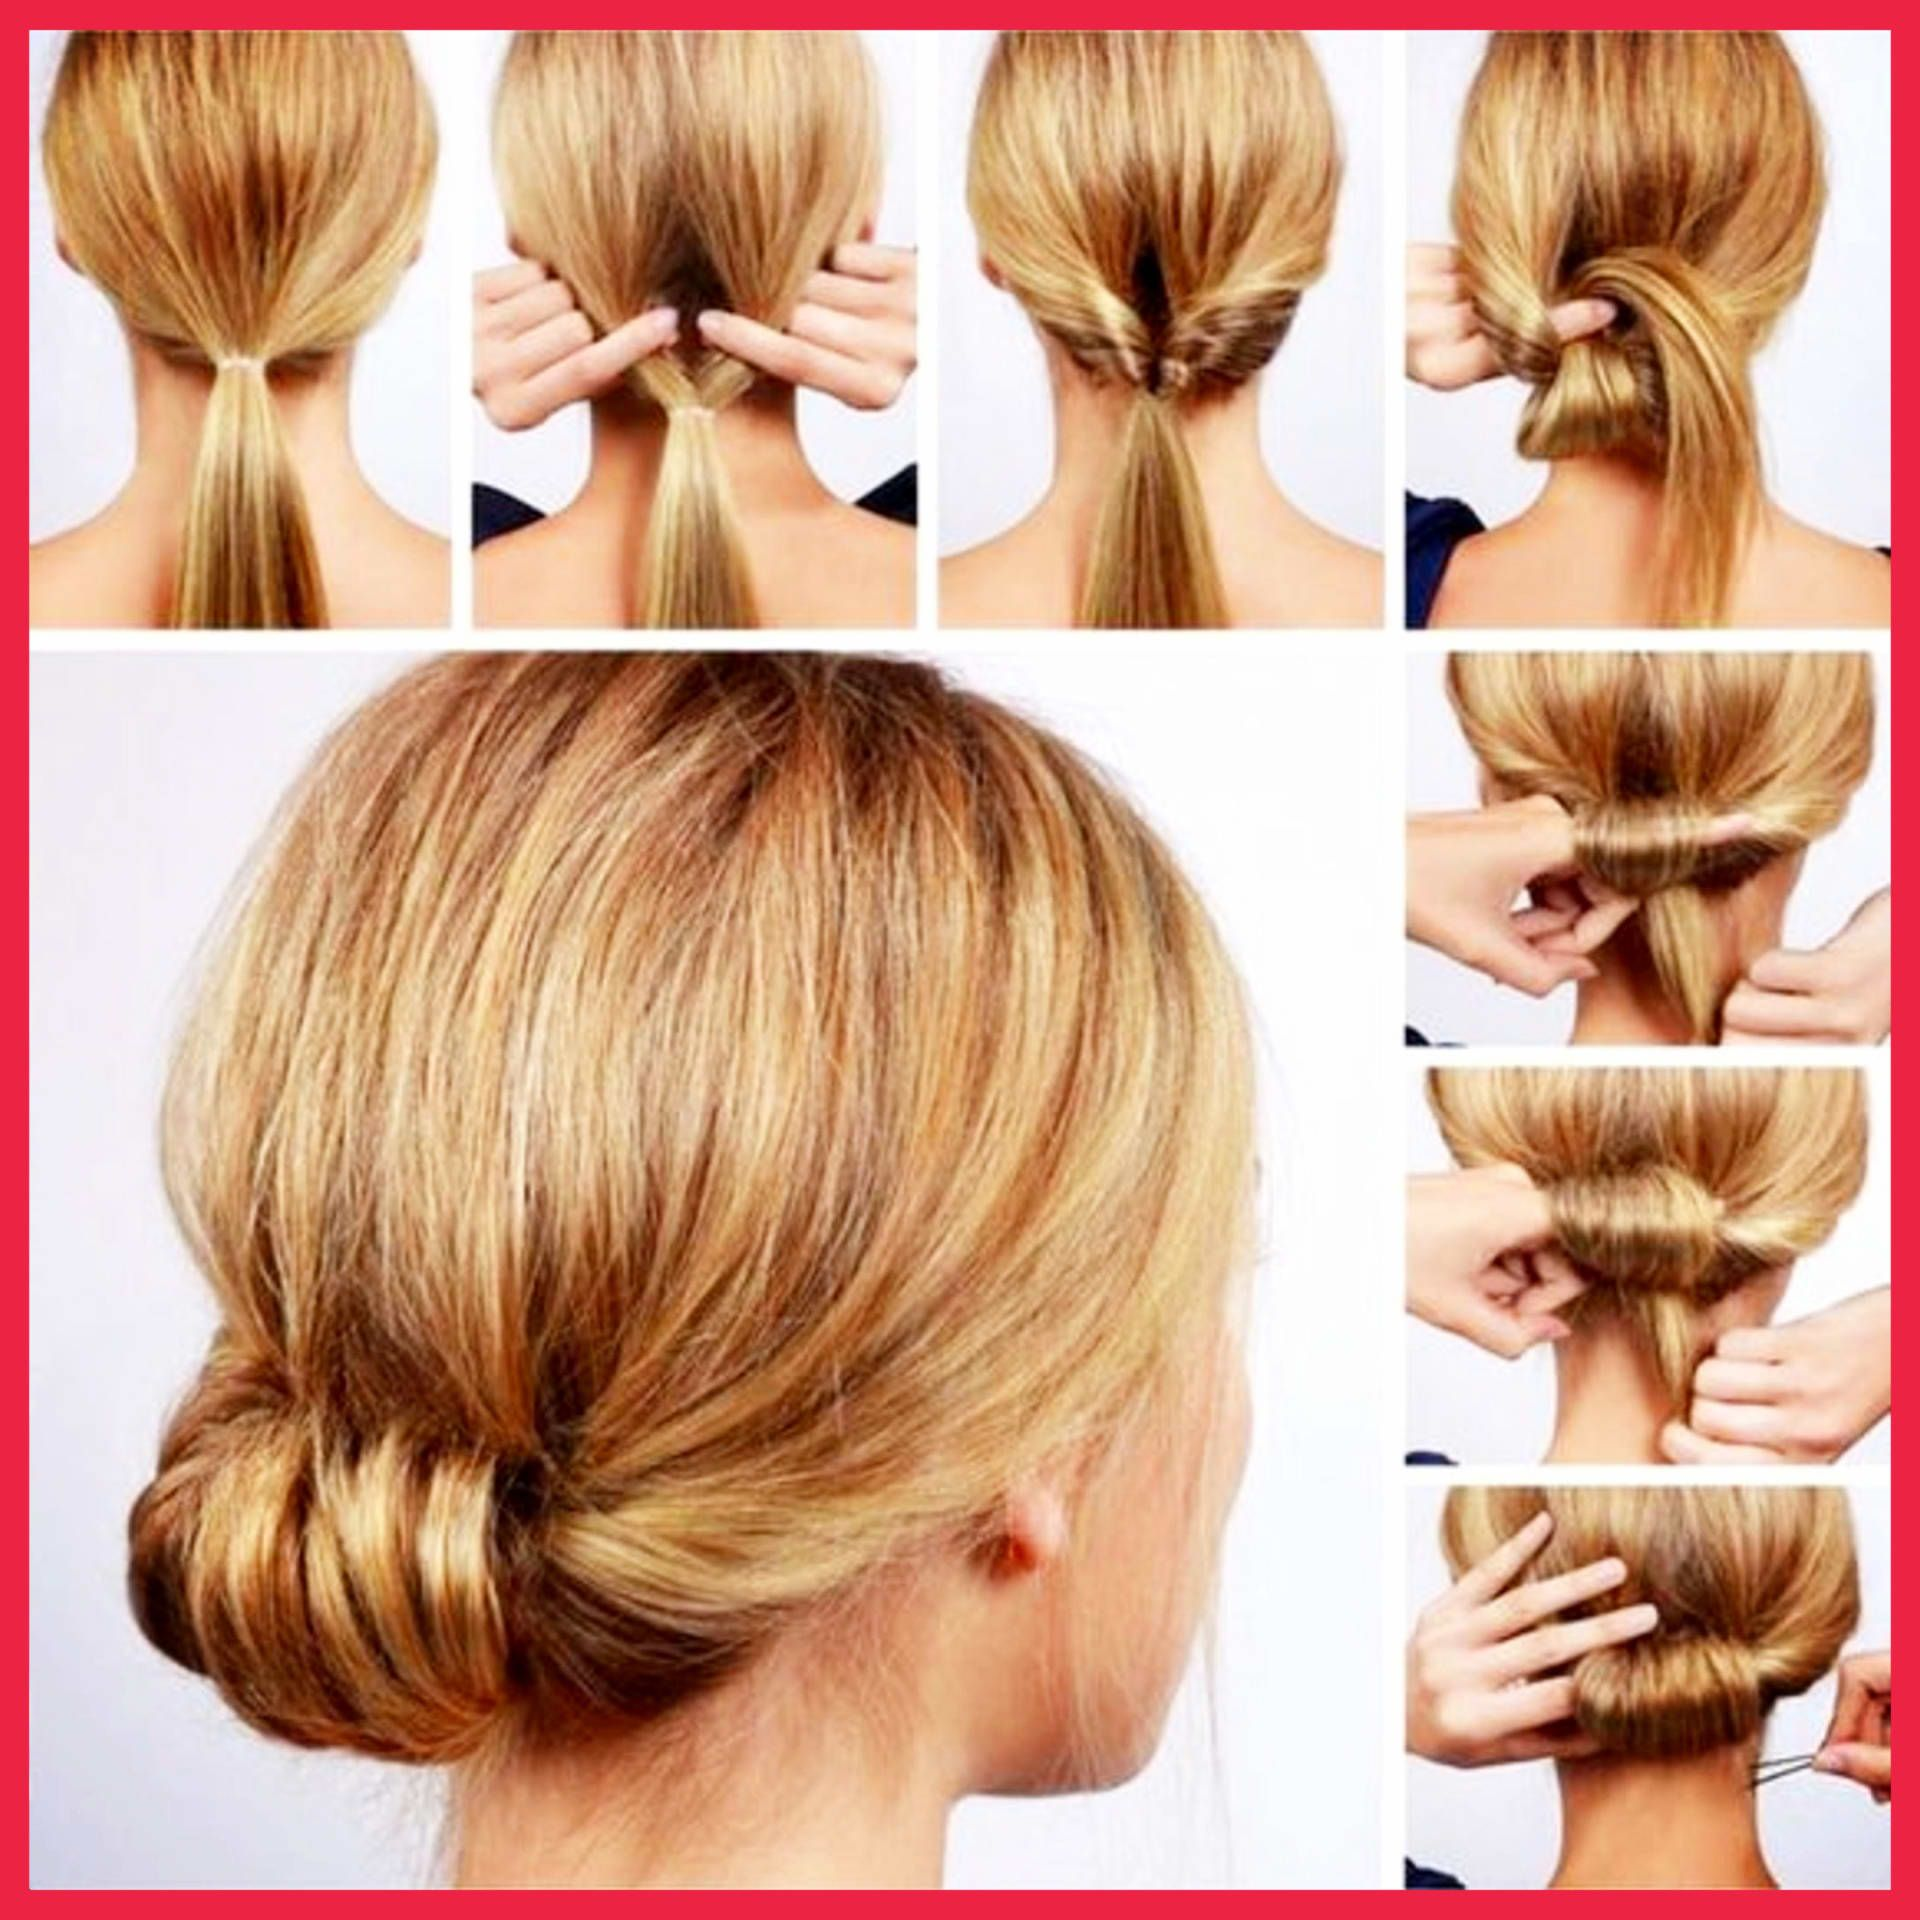 10 Easy Lazy Girl Hairstyle Ideas Step By Step Video Tutorials For Lazy Day Running Late Quick Hairstyles Clever Diy Ideas Hair Styles Long Hair Styles Lazy Girl Hairstyles